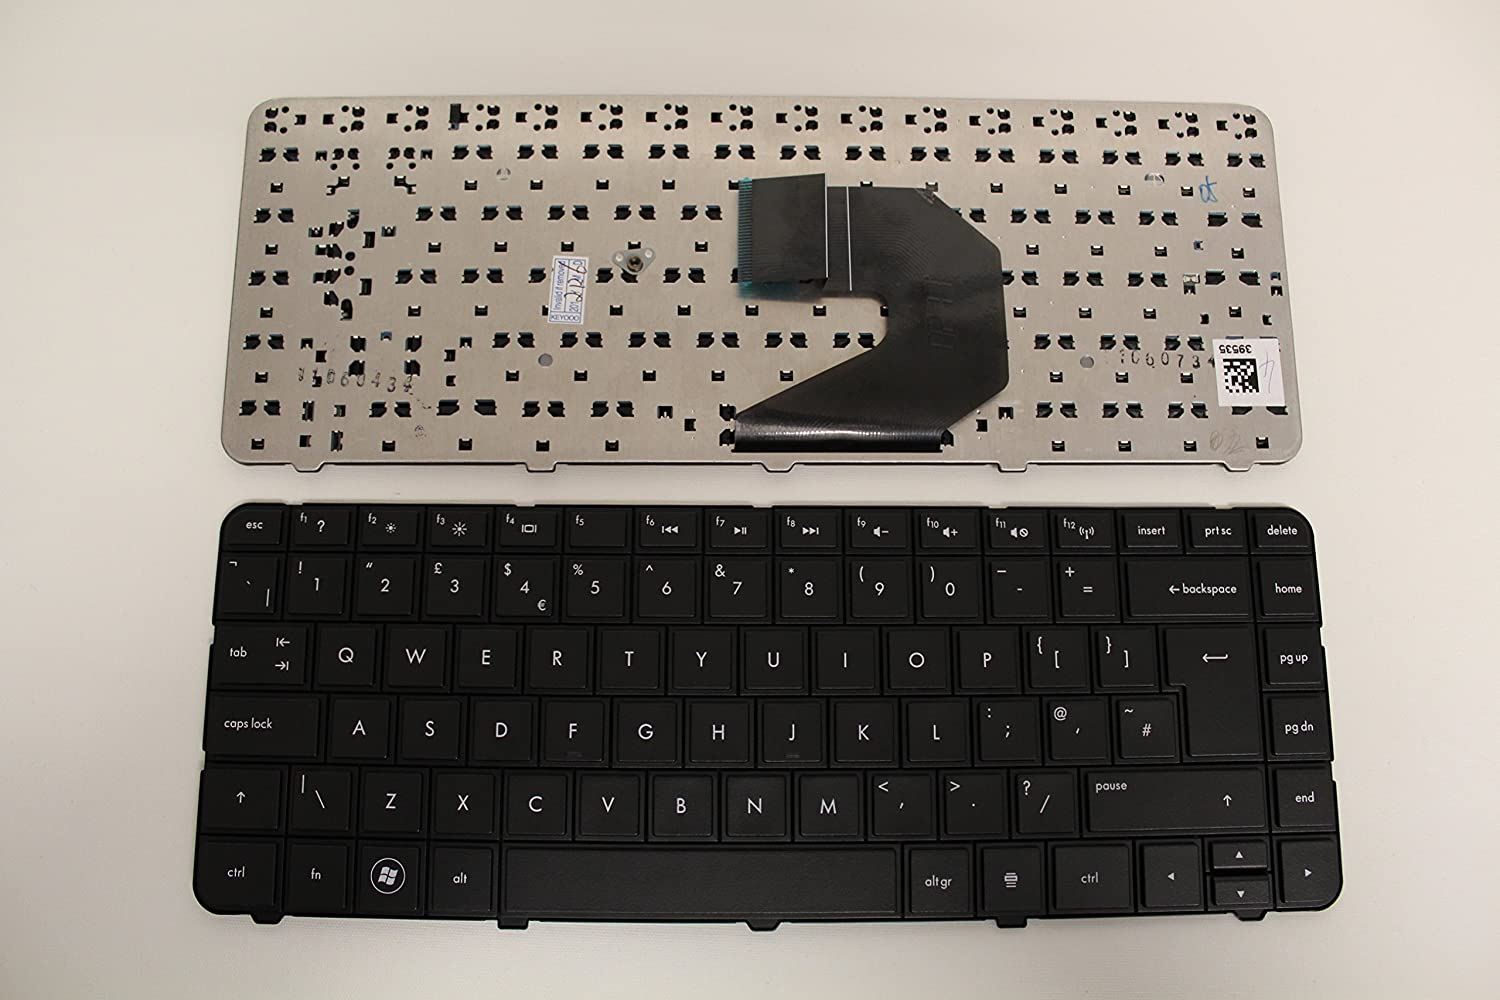 New HP Pavilion G4 G6 G4-1000 G6-1000 Series 633183-031 643263-031 Keyboard UK